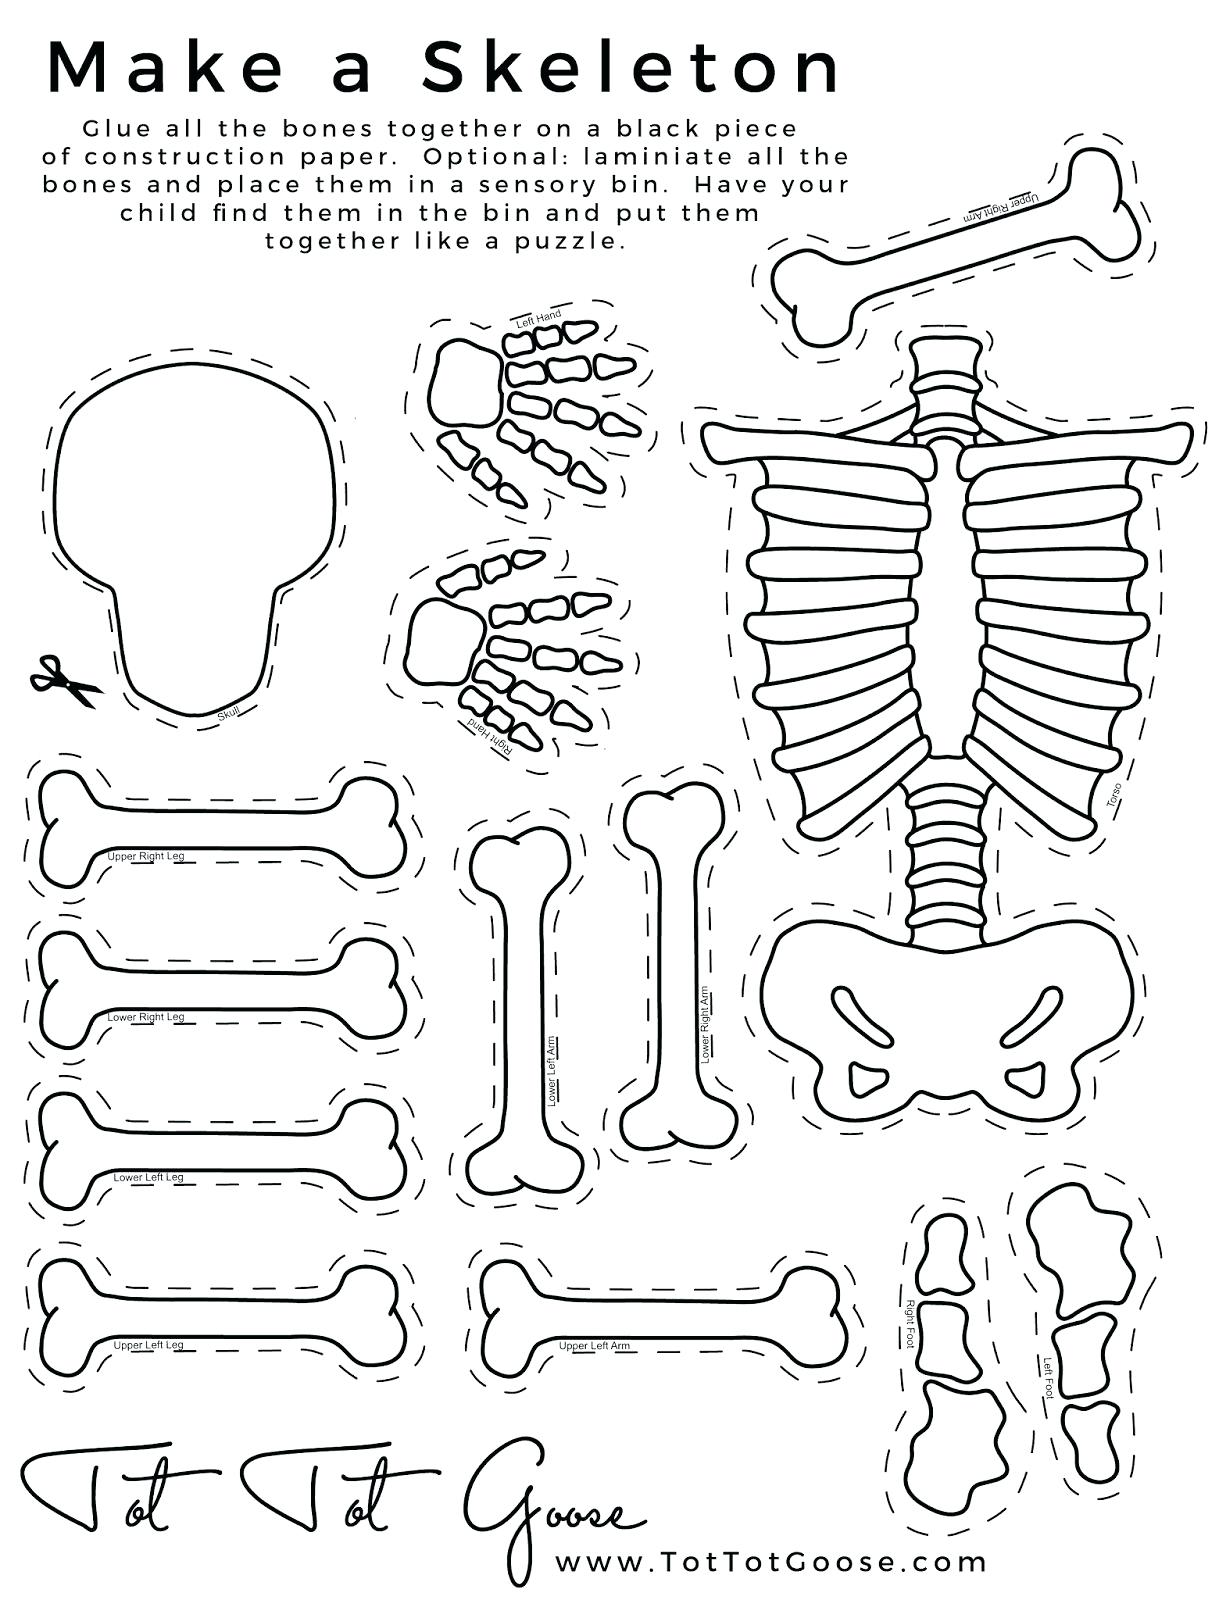 Skeletal System Drawing At Getdrawings